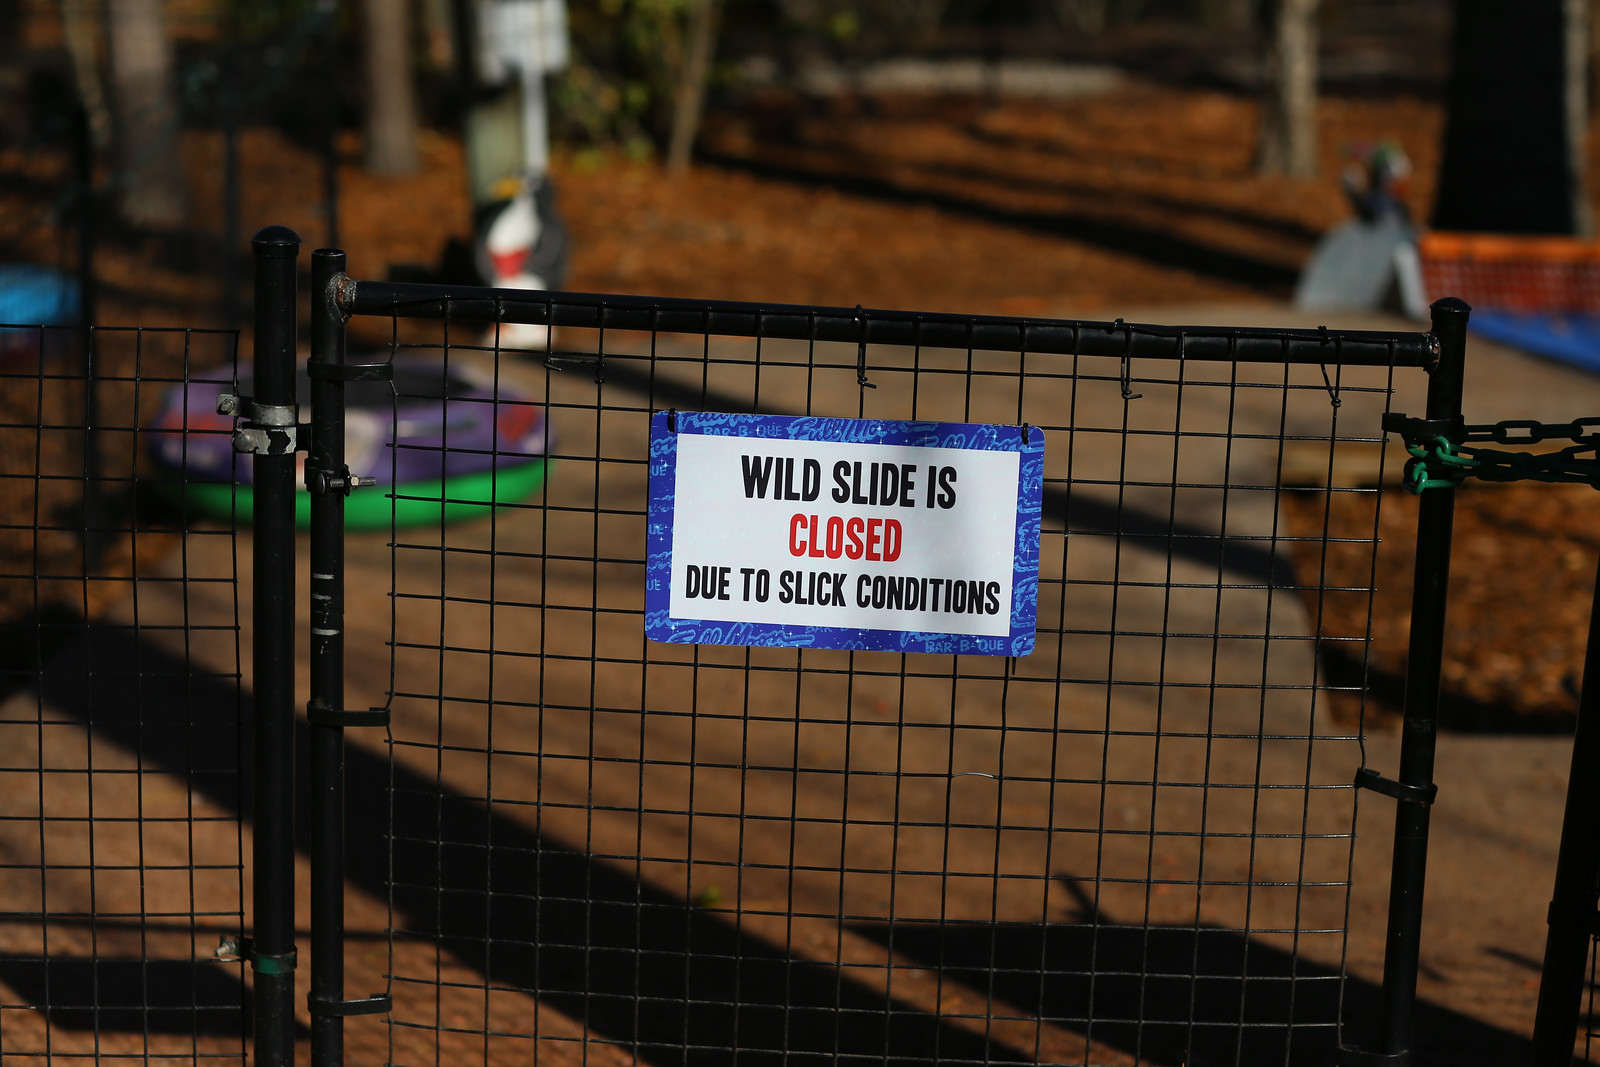 wild slide is closed due to slick conditions